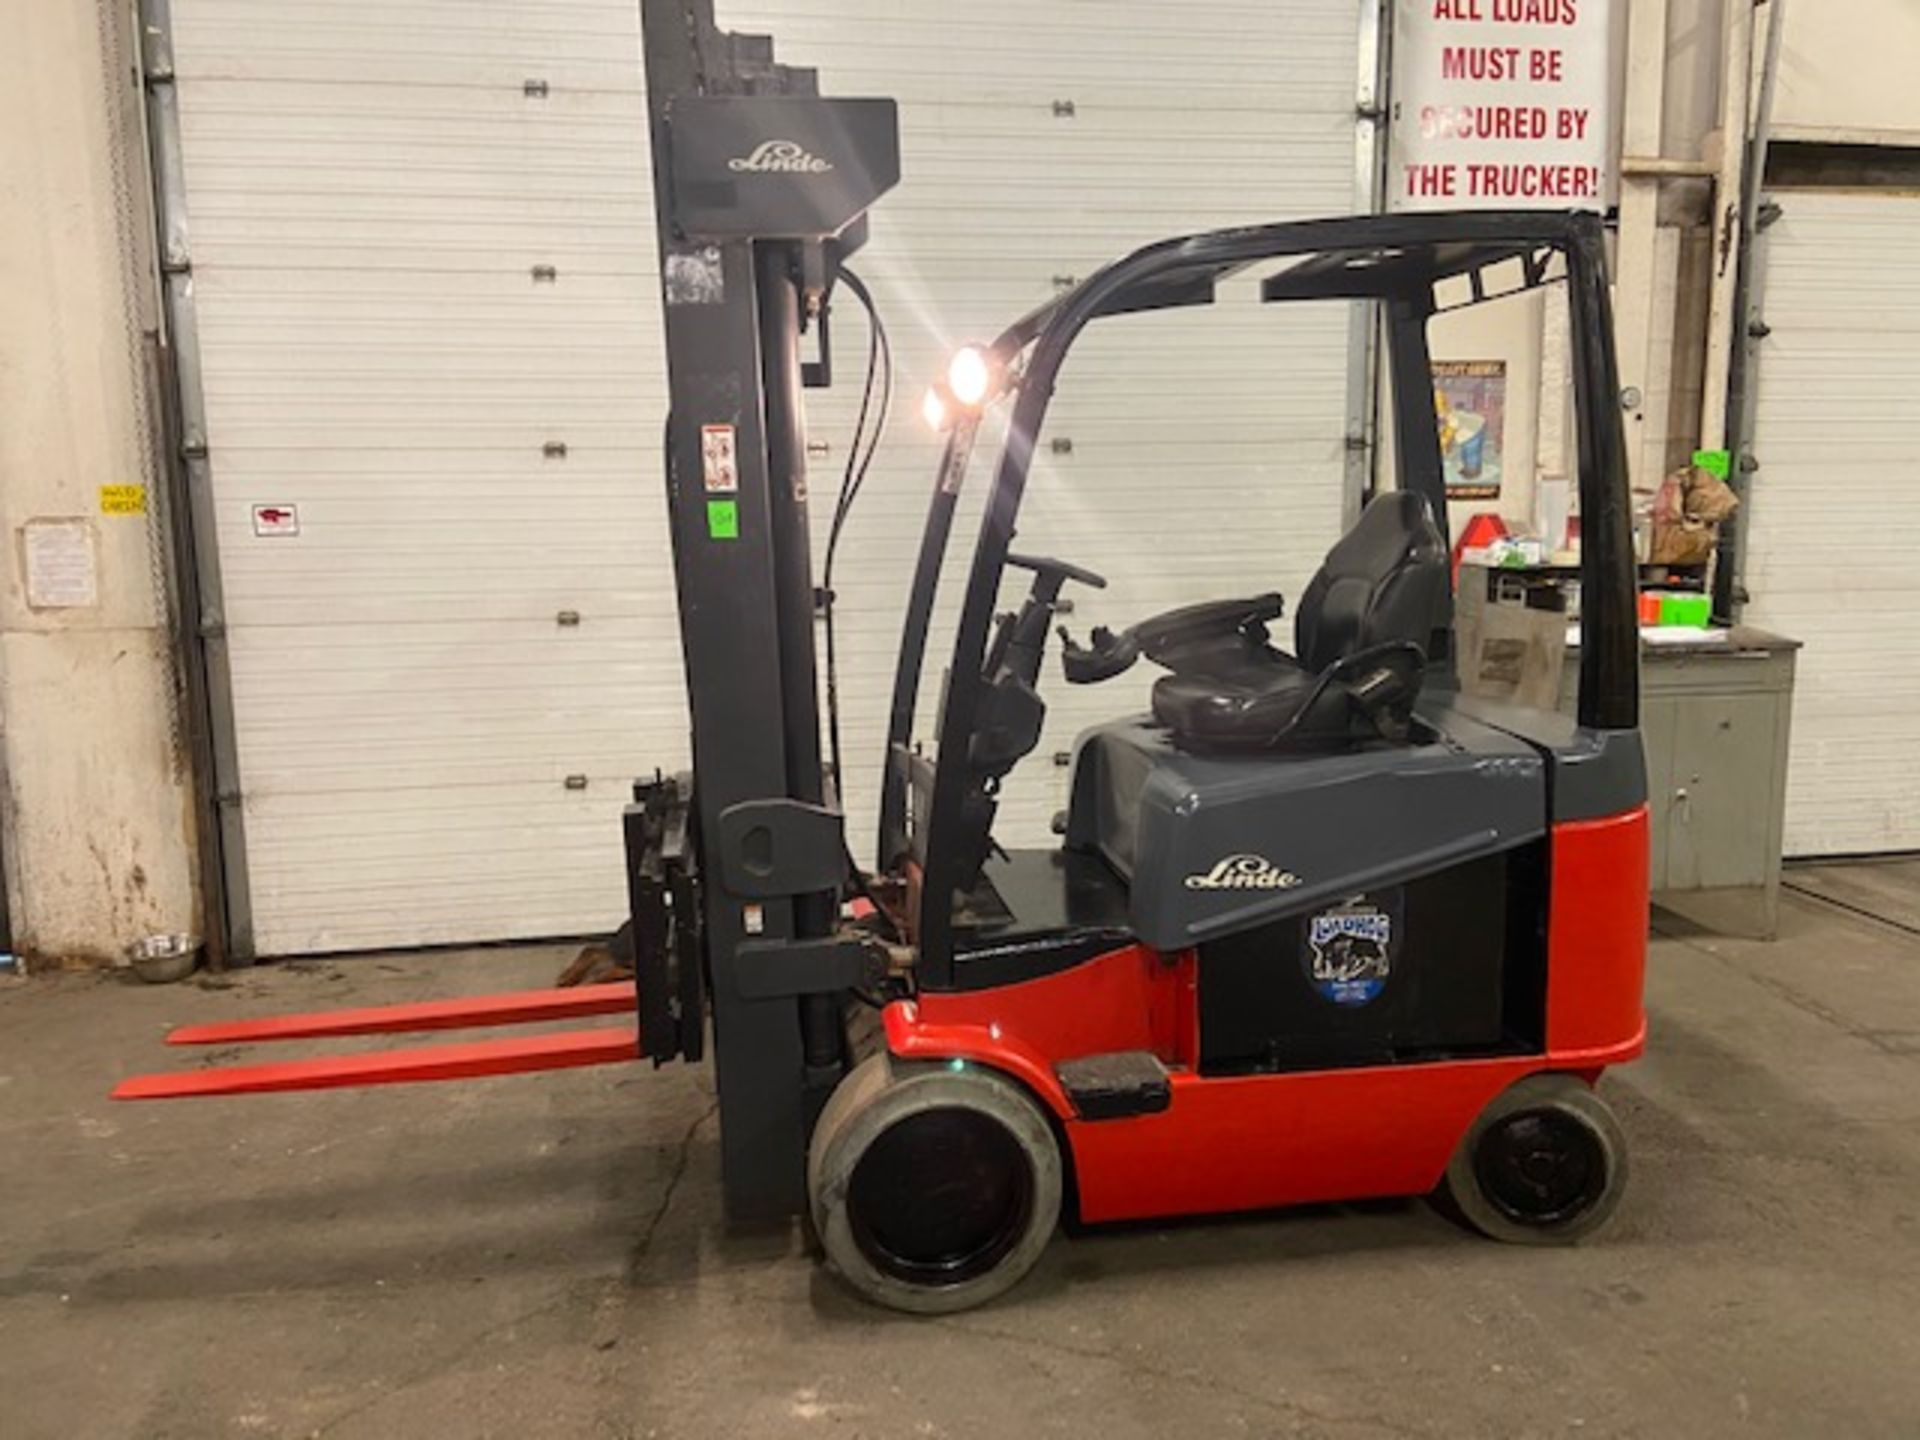 FREE CUSTOMS - LINDE 5000lbs Capacity Forklift 4-STAGE Mast - Electric unit with sideshift